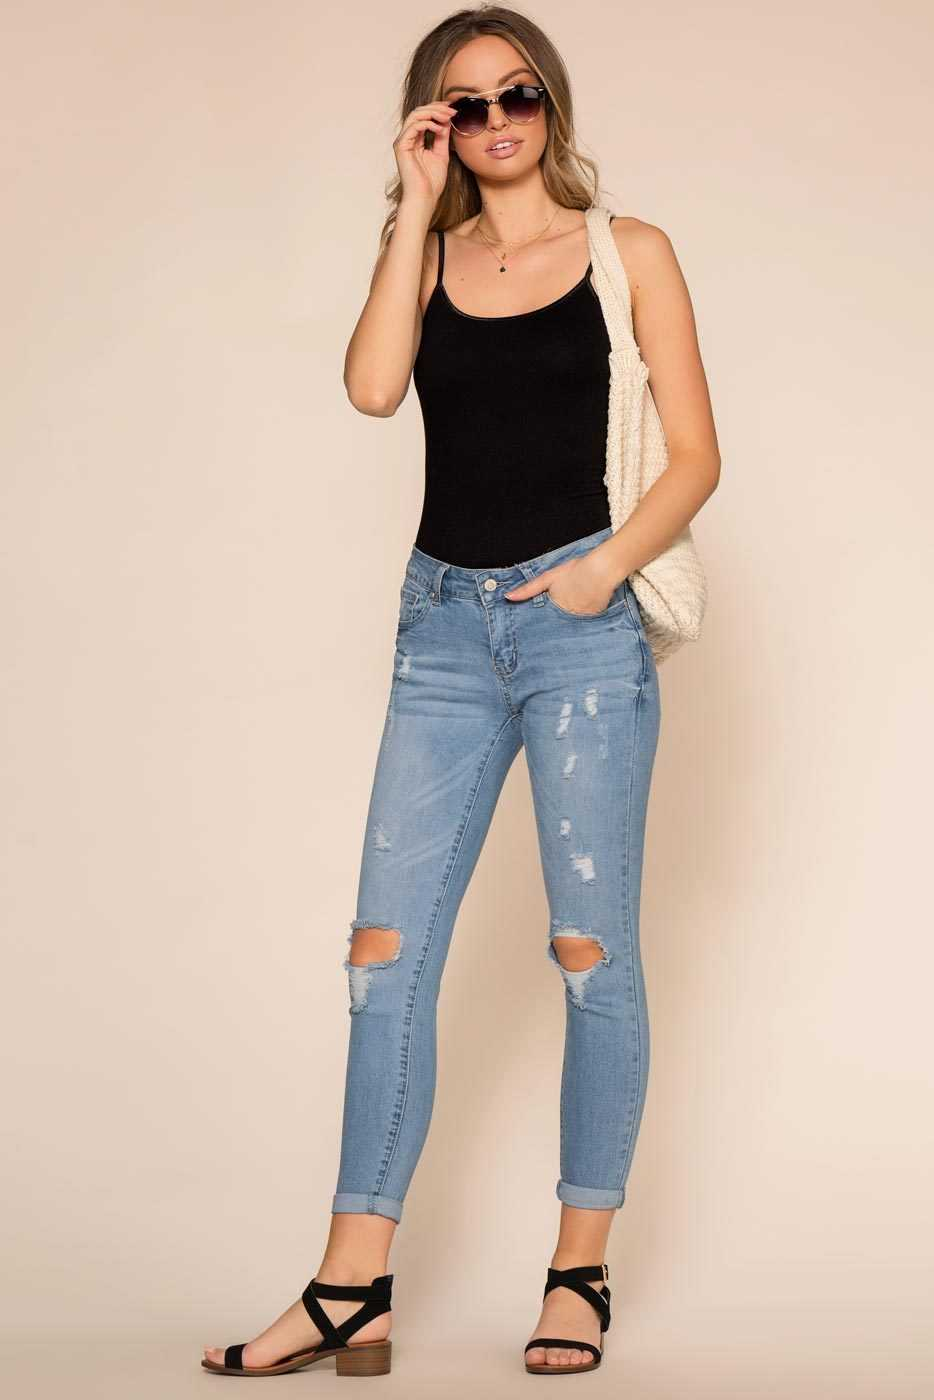 Pants - Harley Distressed Jeans - Medium